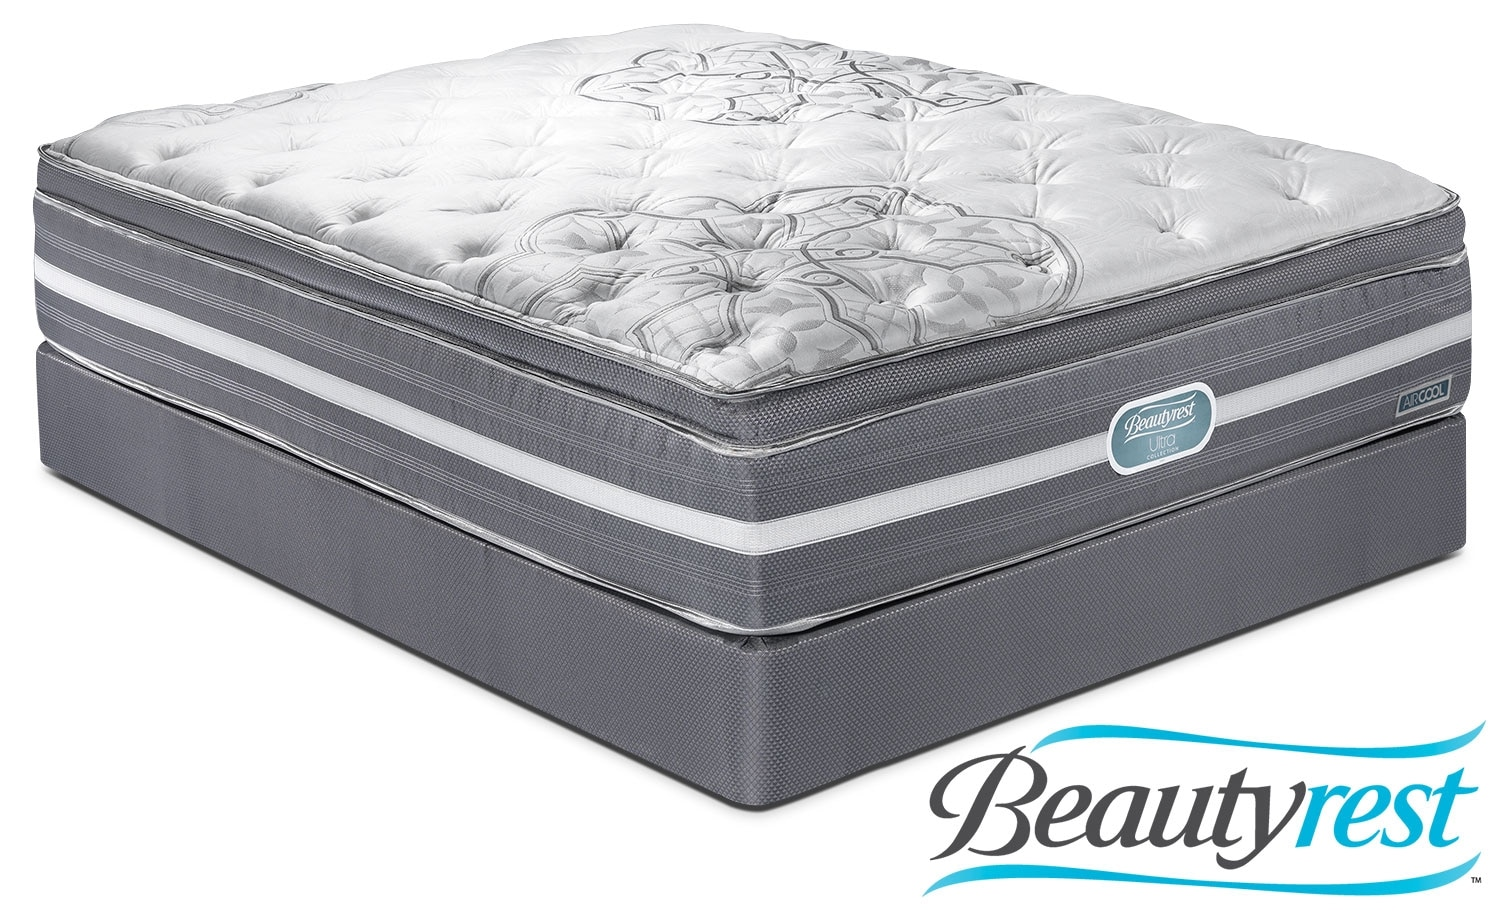 Mattresses and Bedding - Simmons Grand Luxe Plush Queen Mattress/Boxspring Set